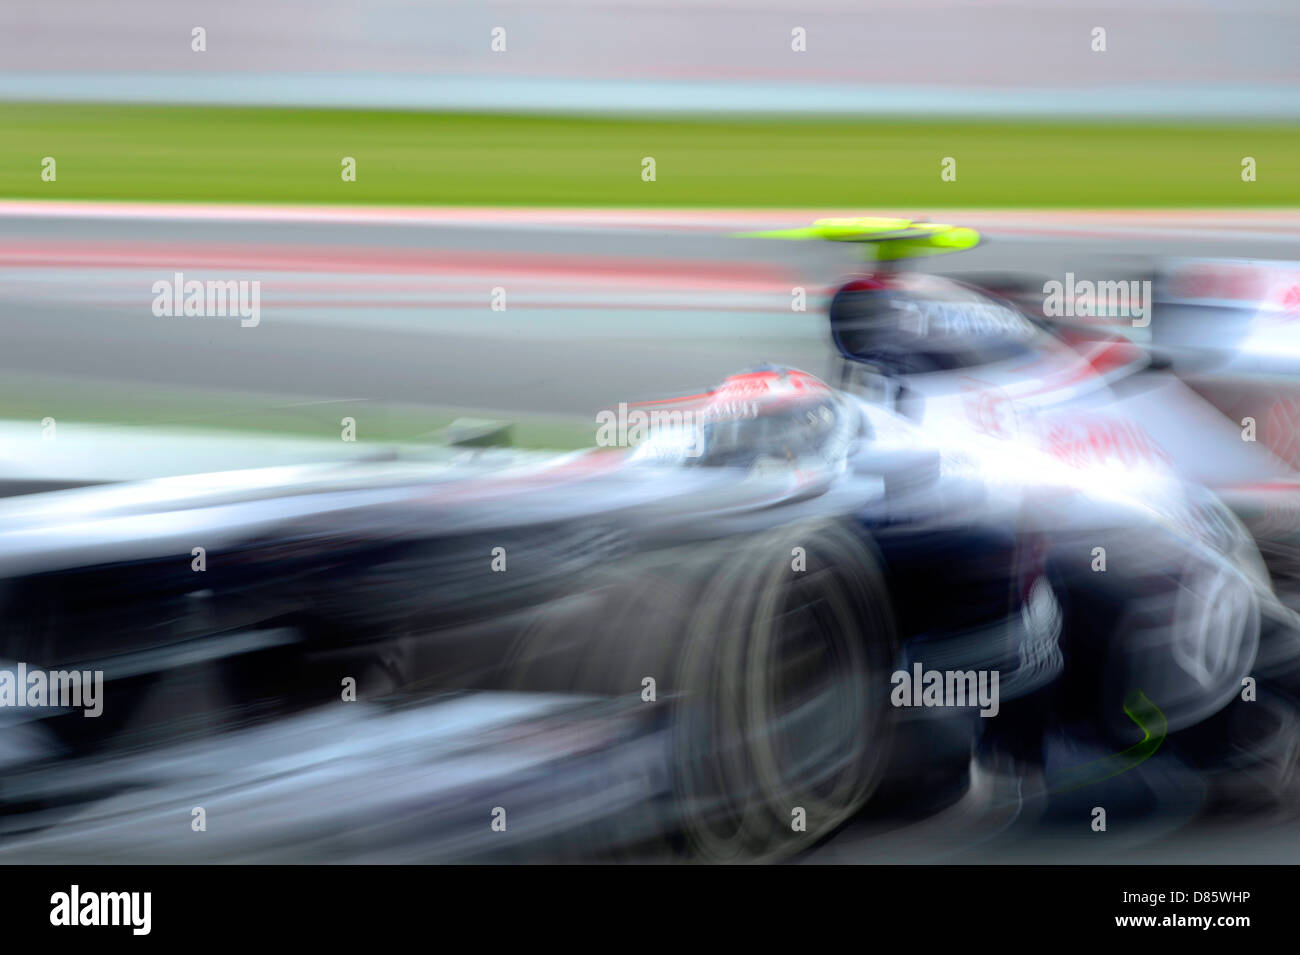 blurred Williams Formula One race car during the Spanish Formula One Grand Prix race 2013 - Stock Image